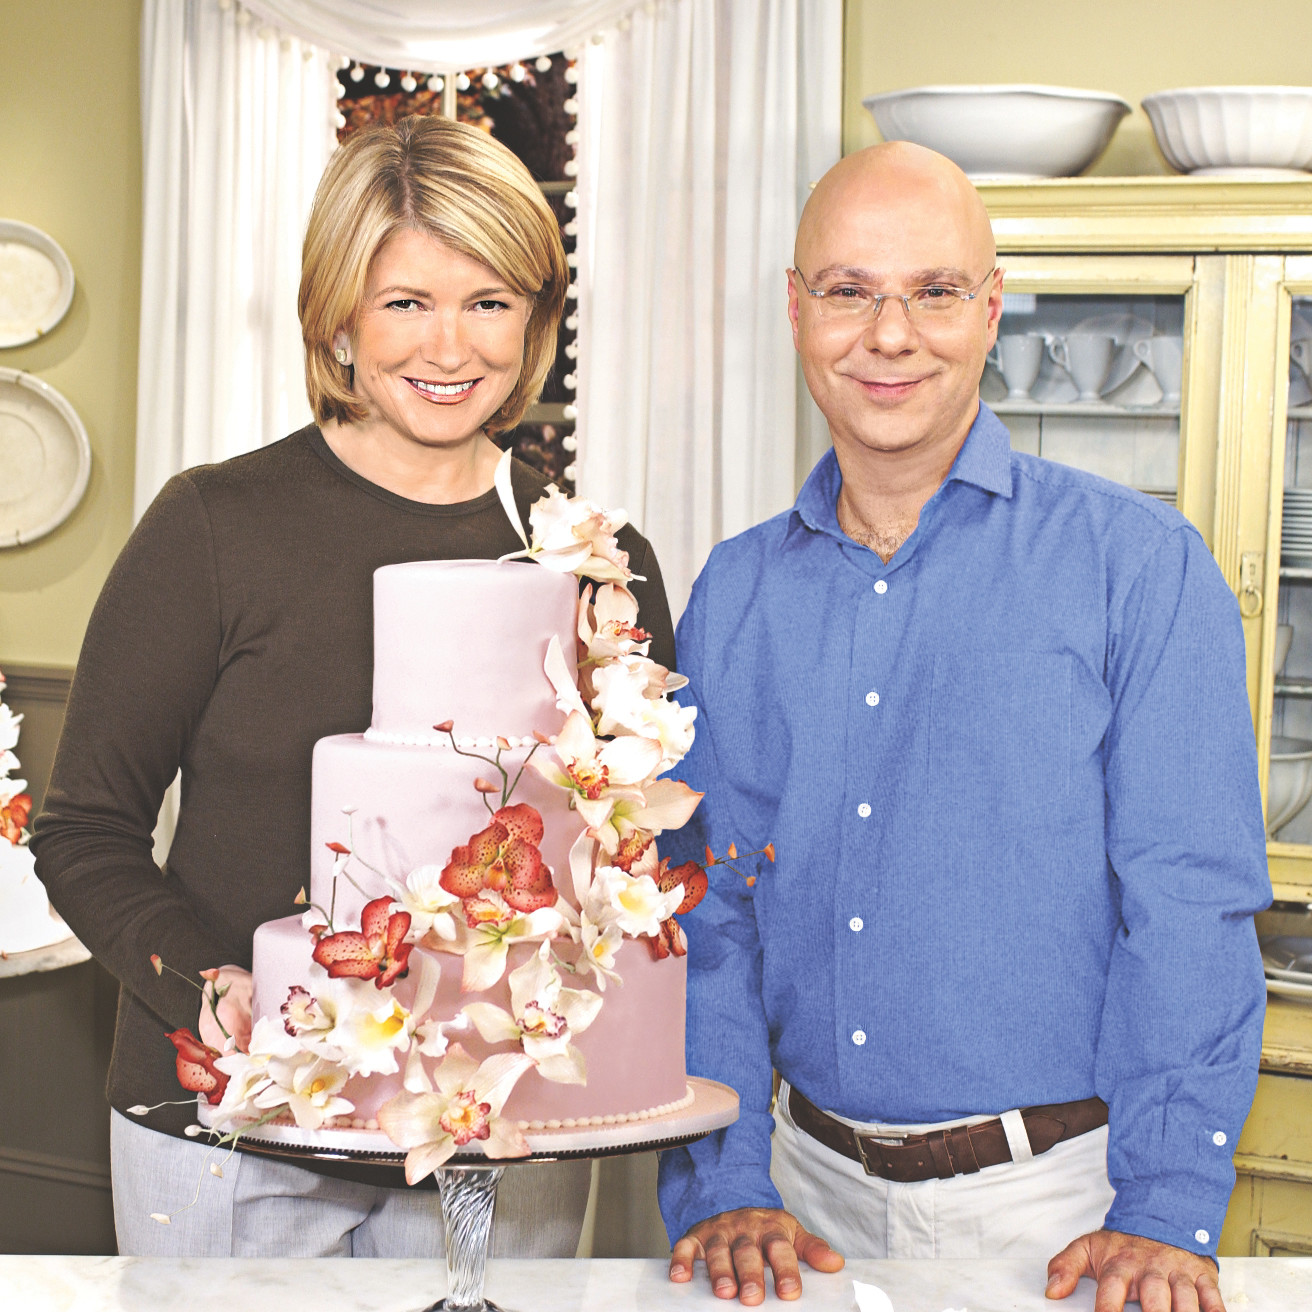 20 Years Of Gorgeous Wedding Cakes By Pastry Chef Ron Ben